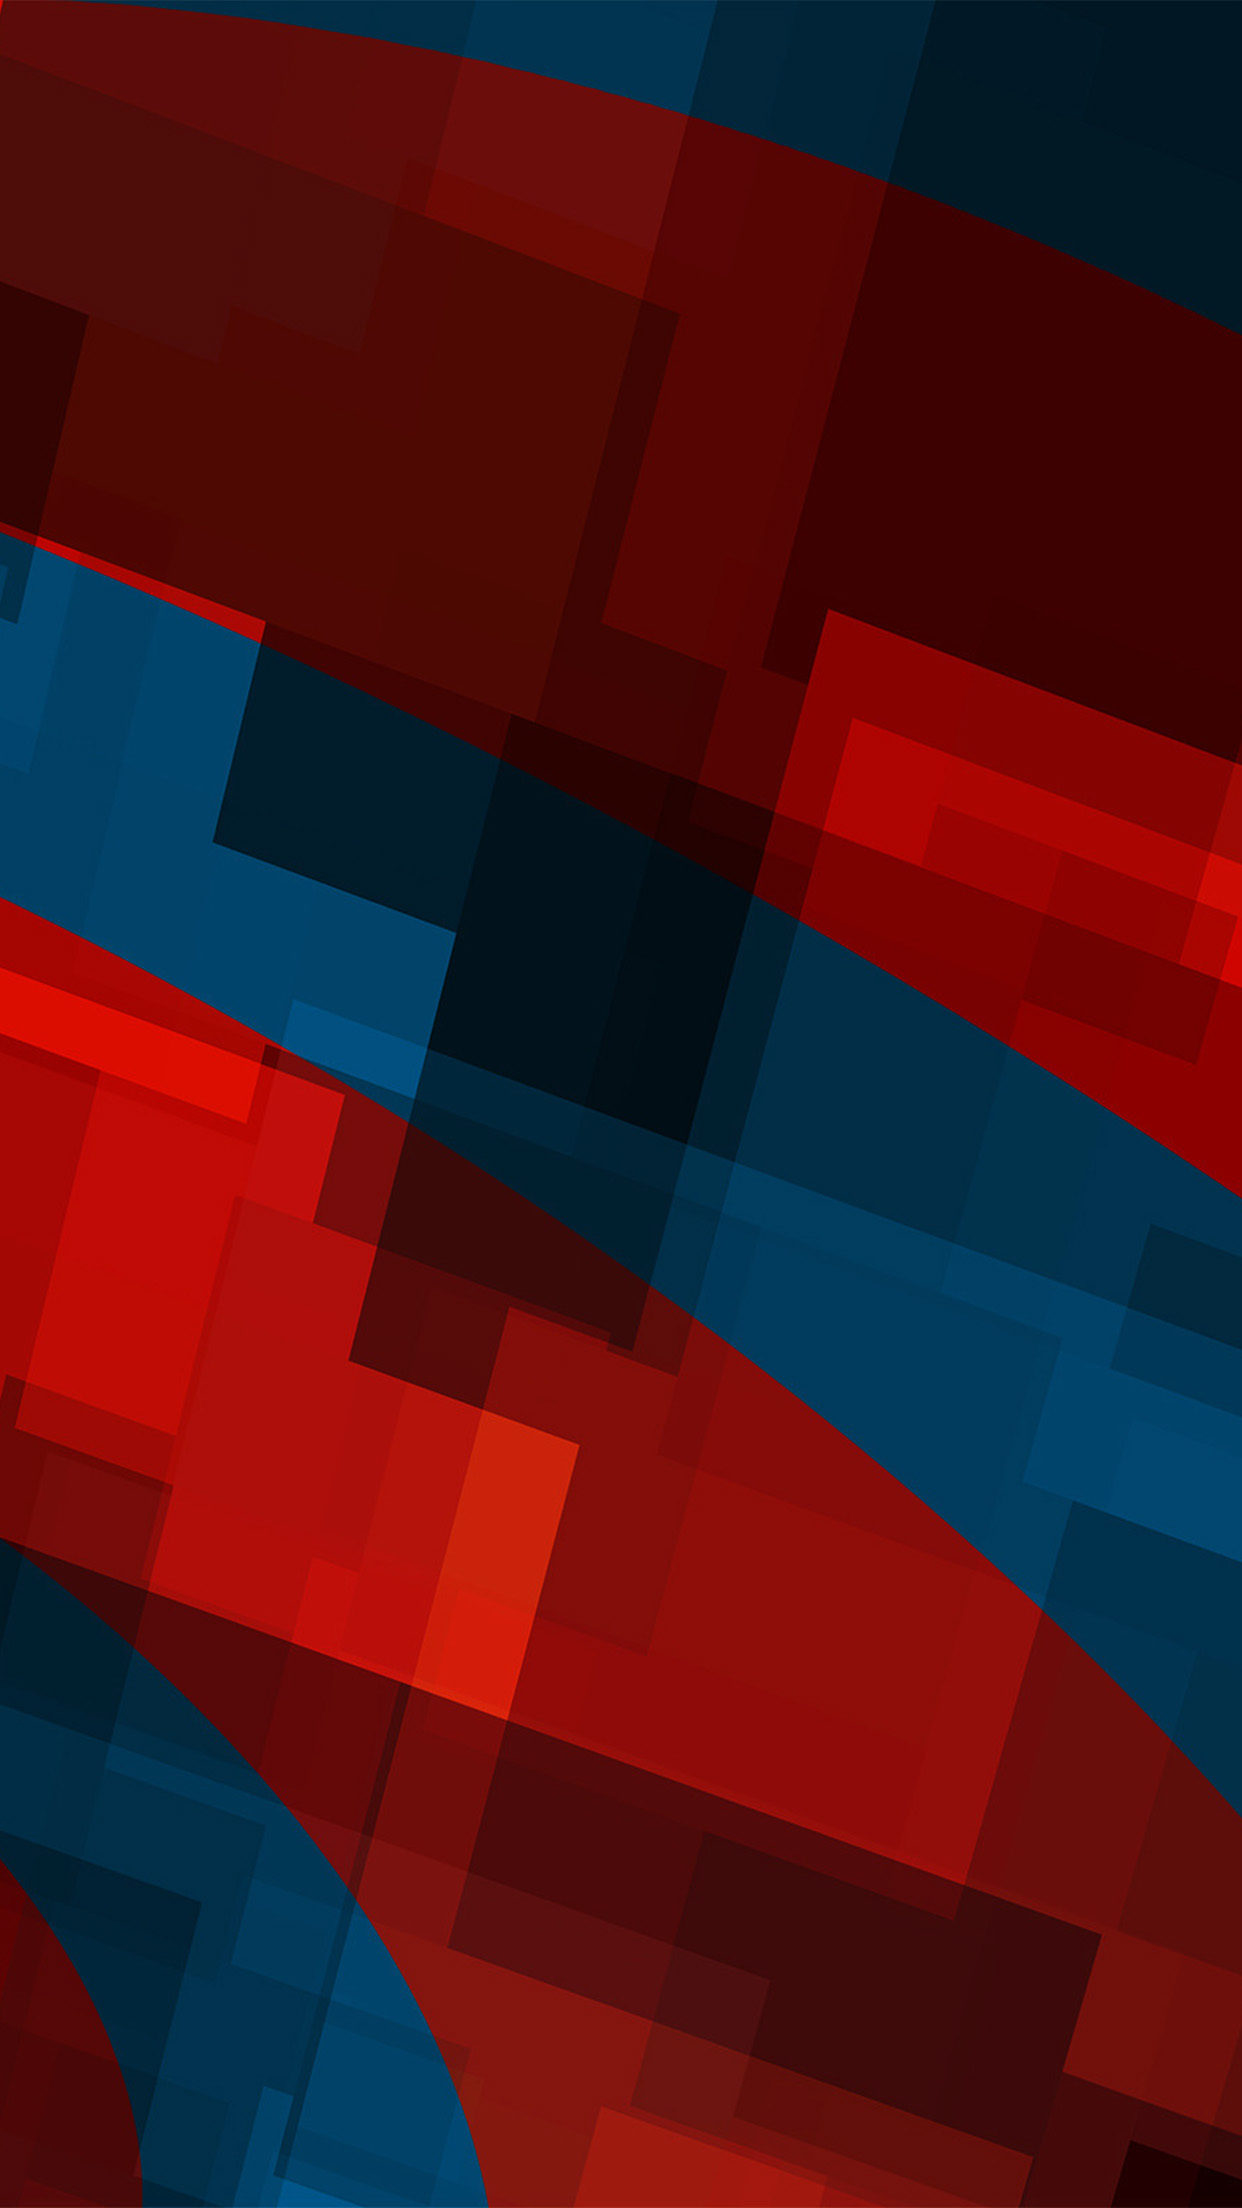 Minimalist Fall Wallpapers Papers Co Iphone Wallpaper Vo59 Art Red Blue Block